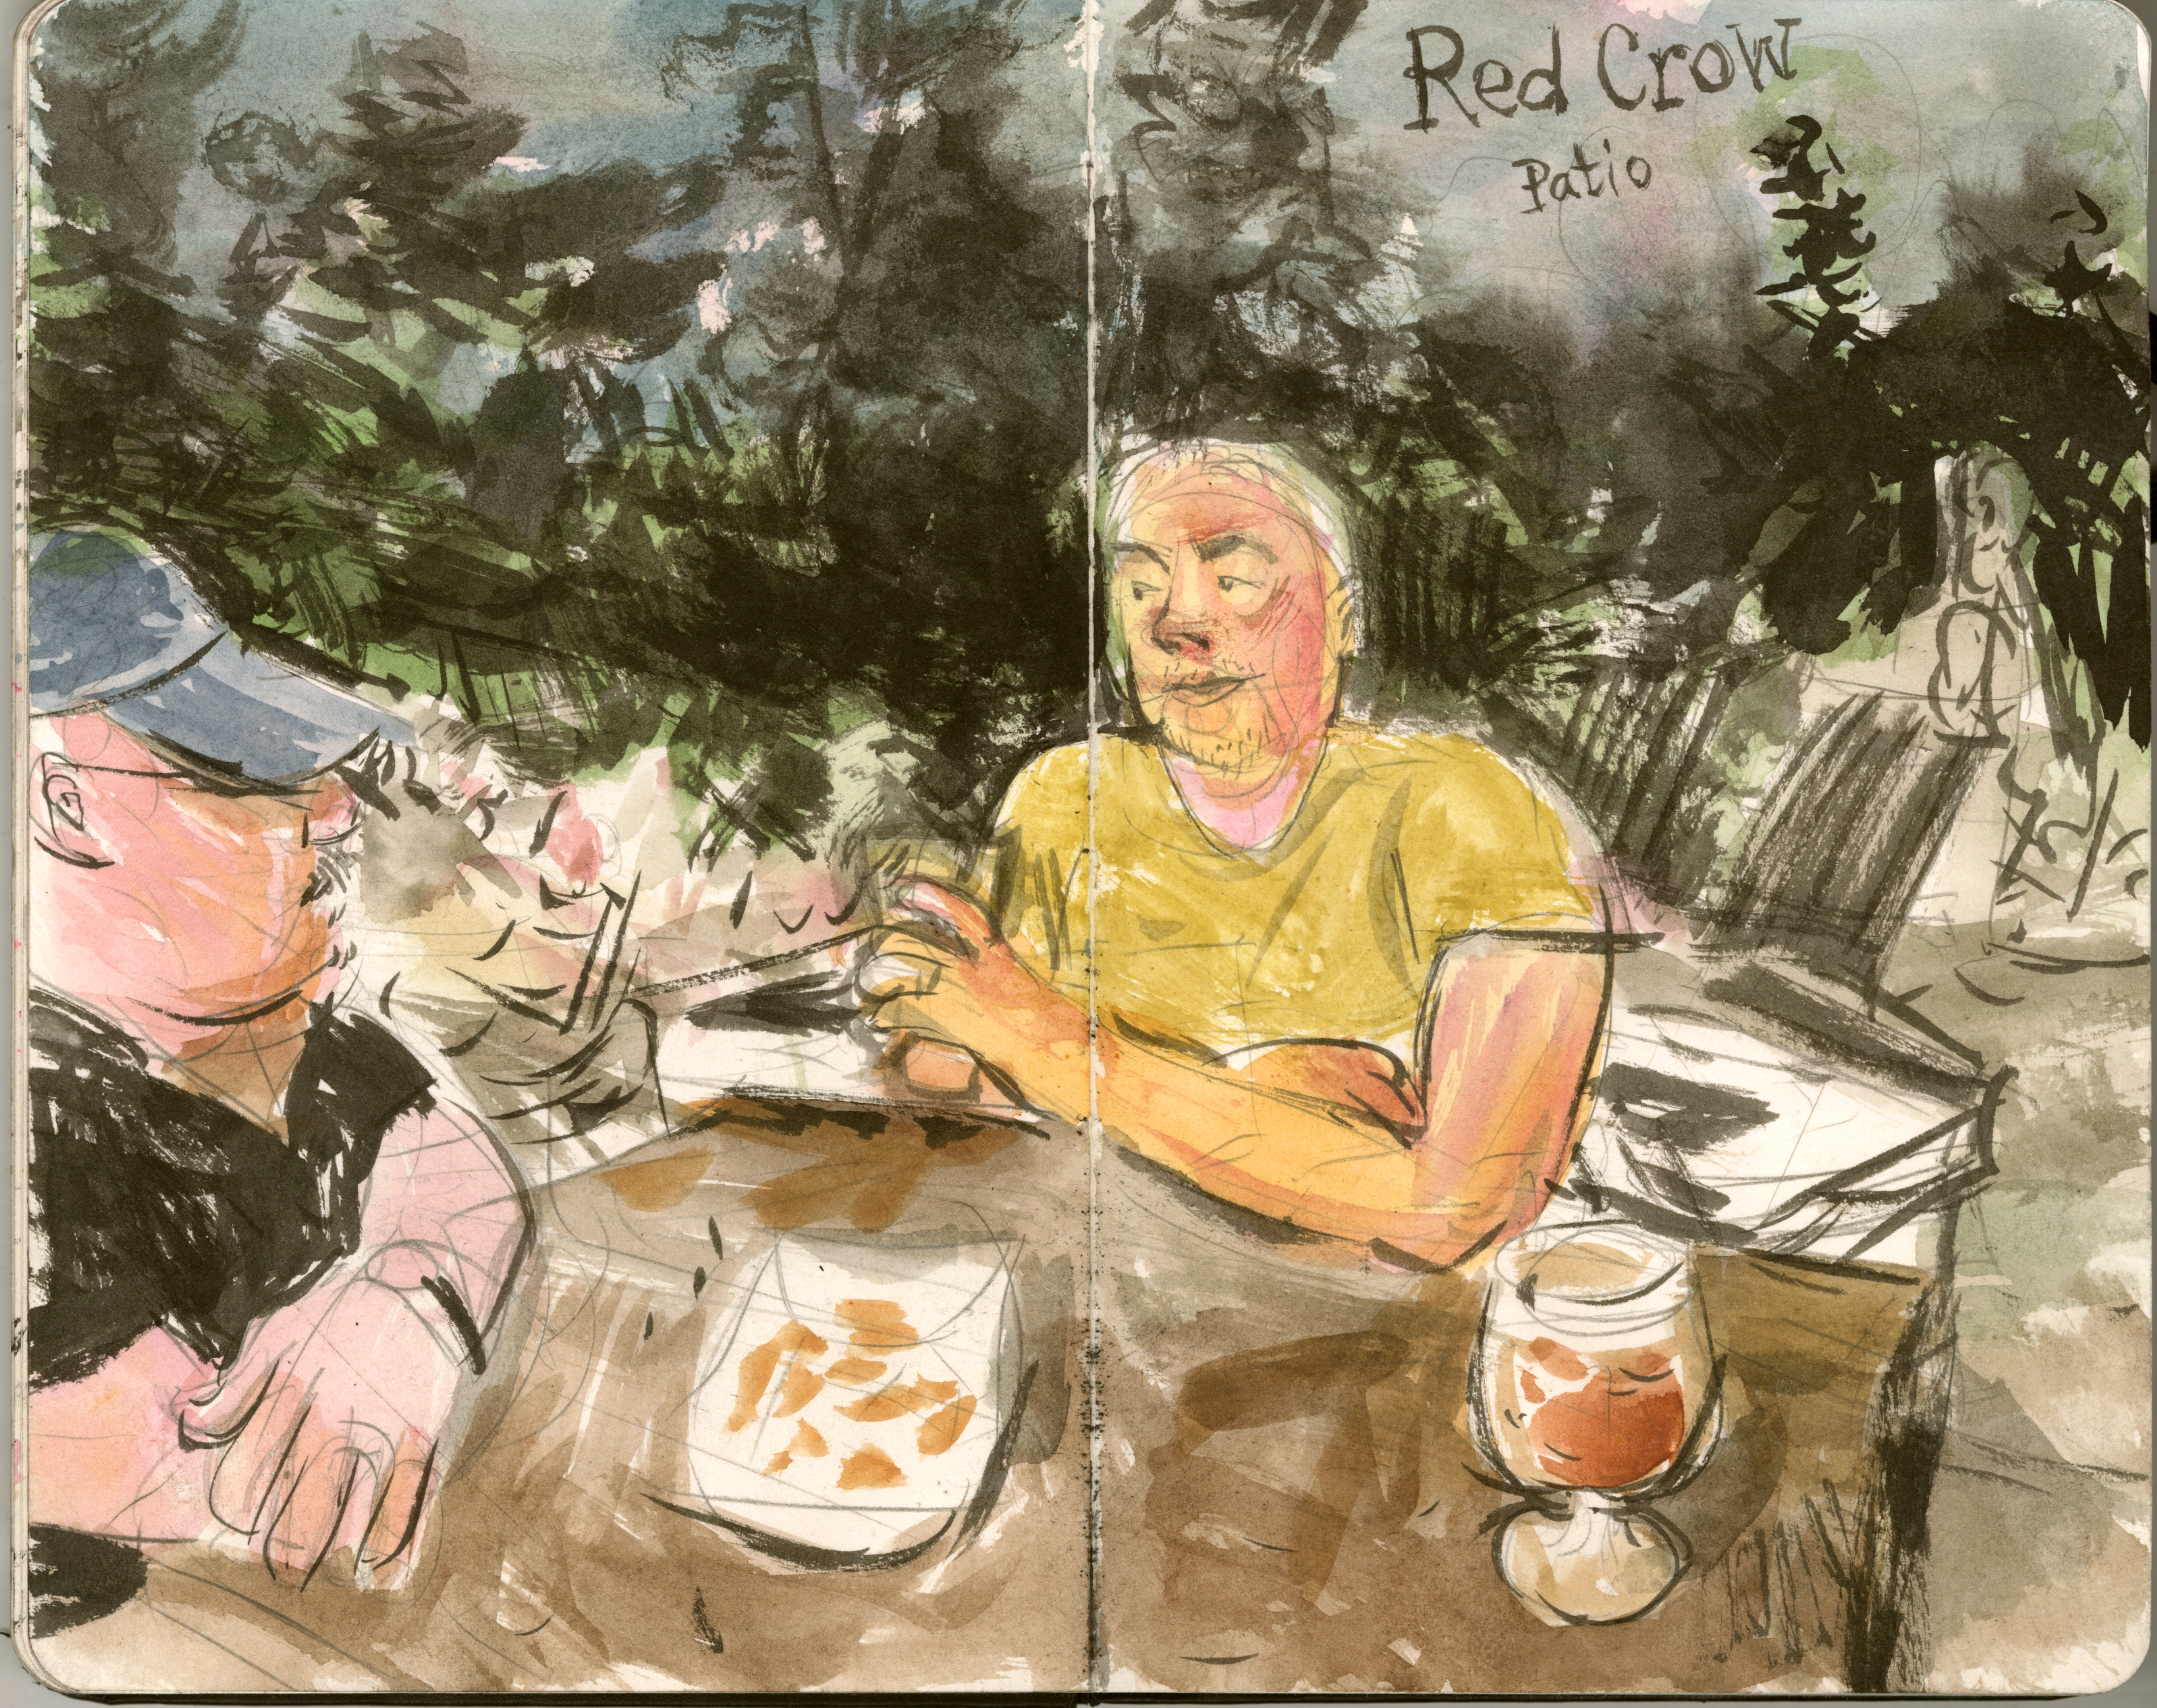 Watercolor of Bill and Curt on the patio of Red Crow Brewing in Stillwell, KS